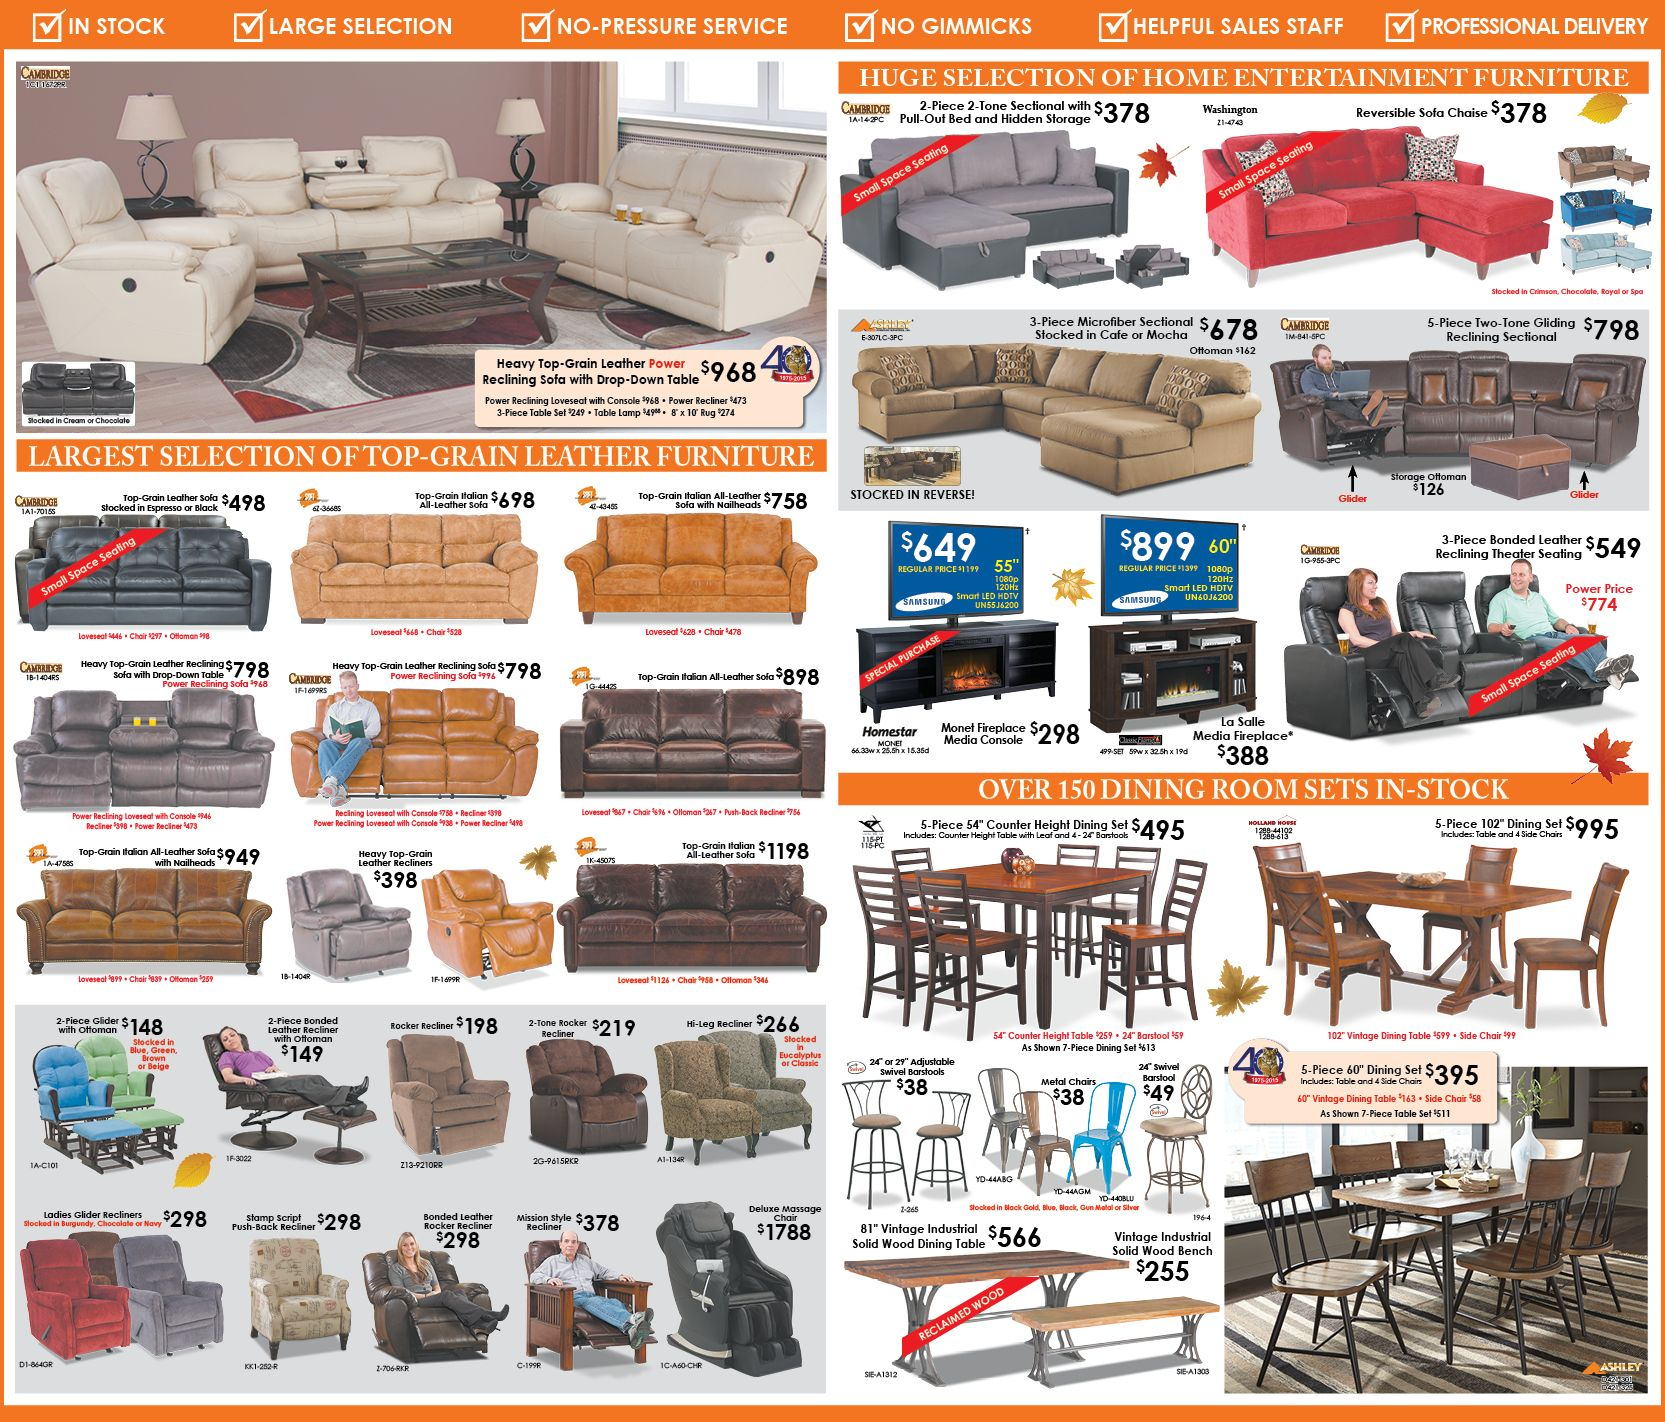 ads afw afw newspaper ads american furniture warehouse